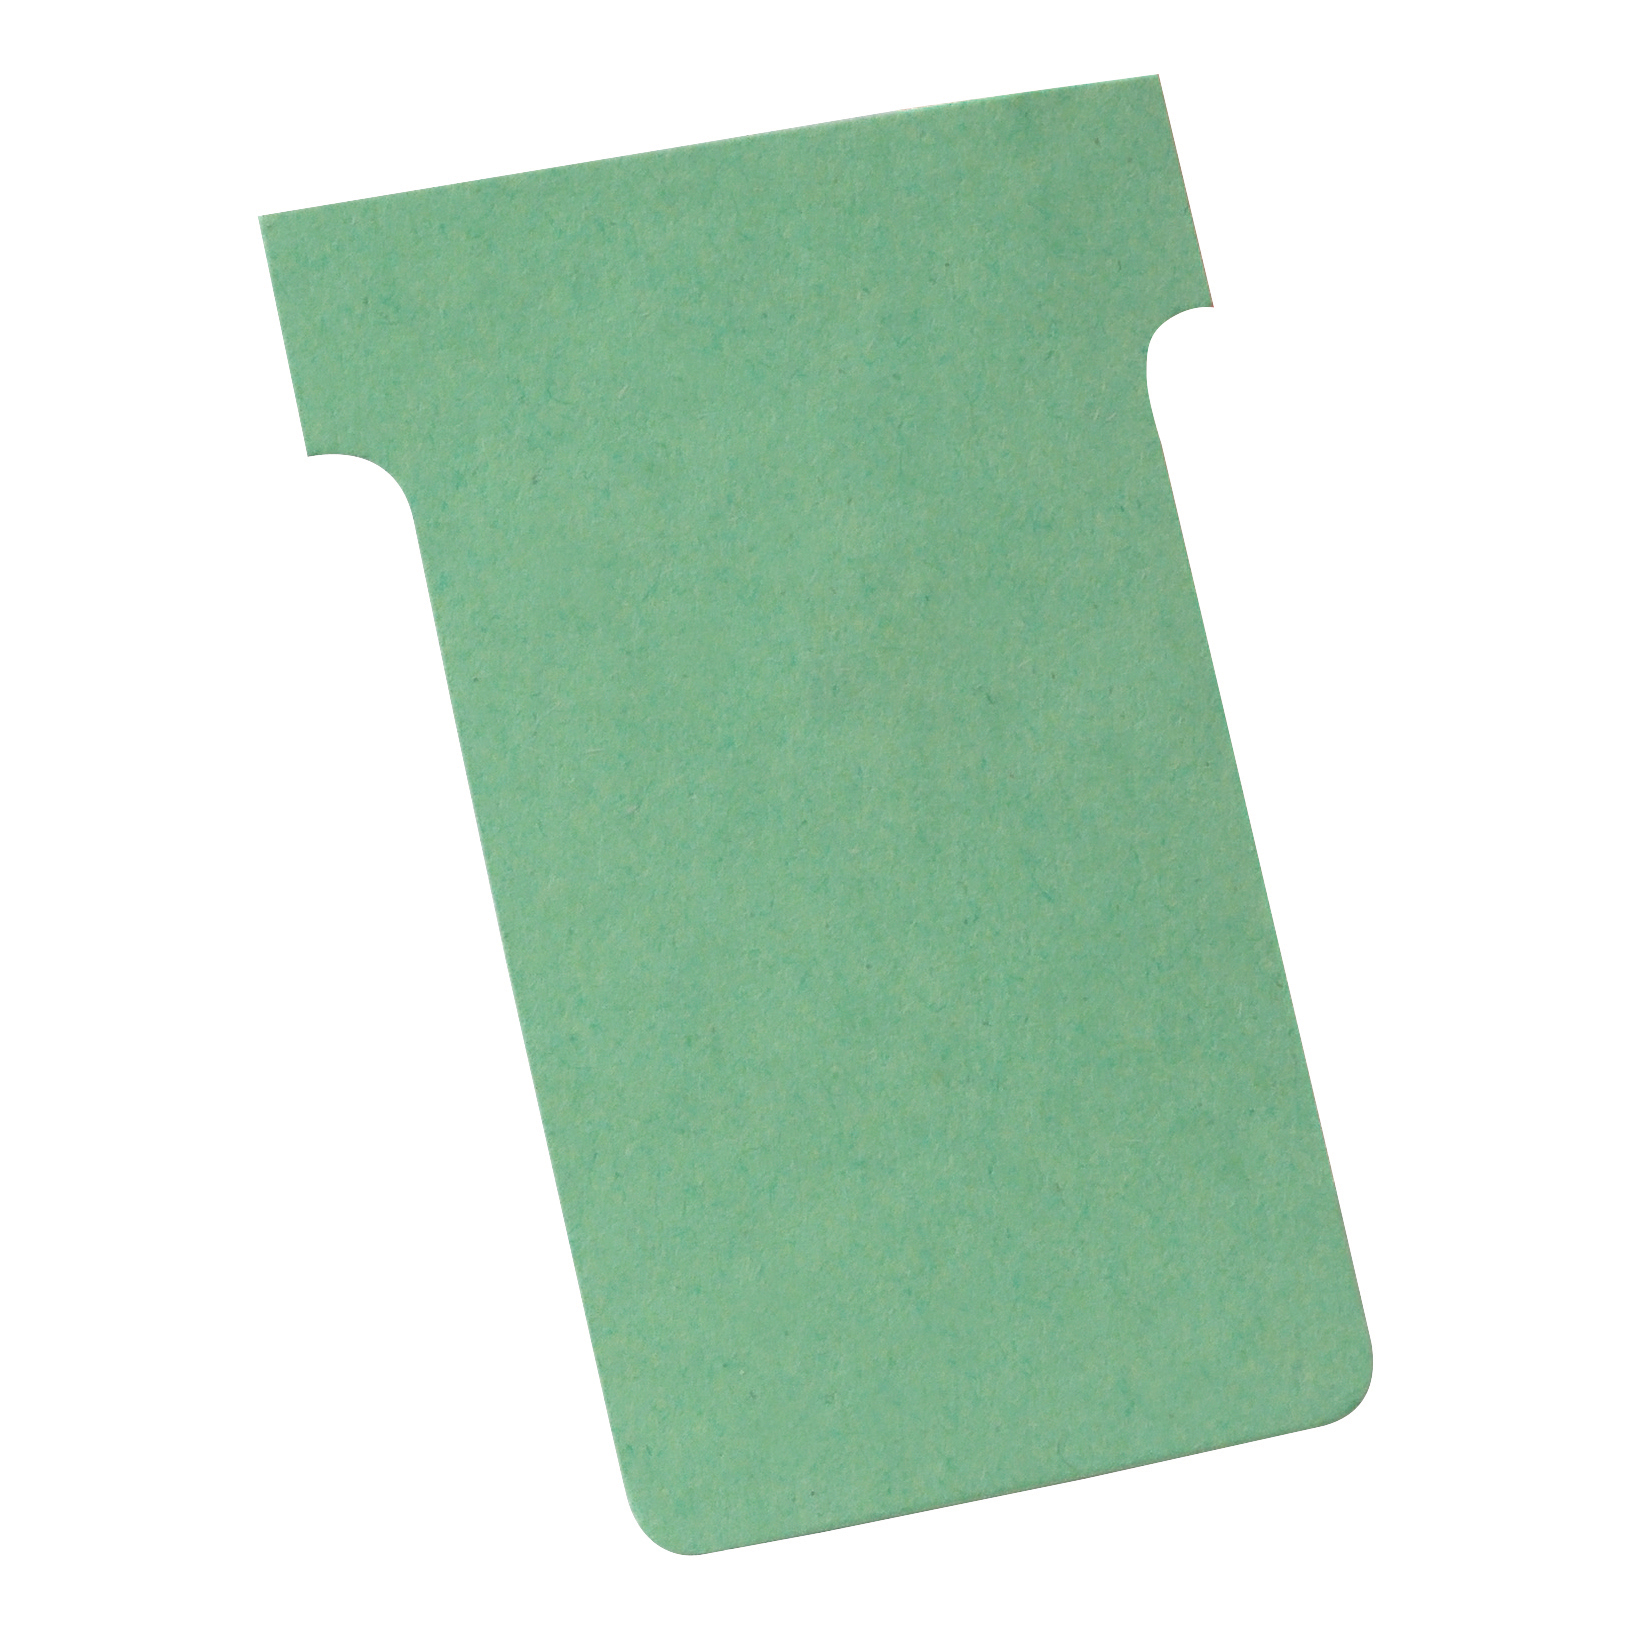 Nobo T-Cards 160gsm Tab Top 15mm W61x Bottom W48.5x Full H86mm Size 2 Green Ref 32938902 Pack 100